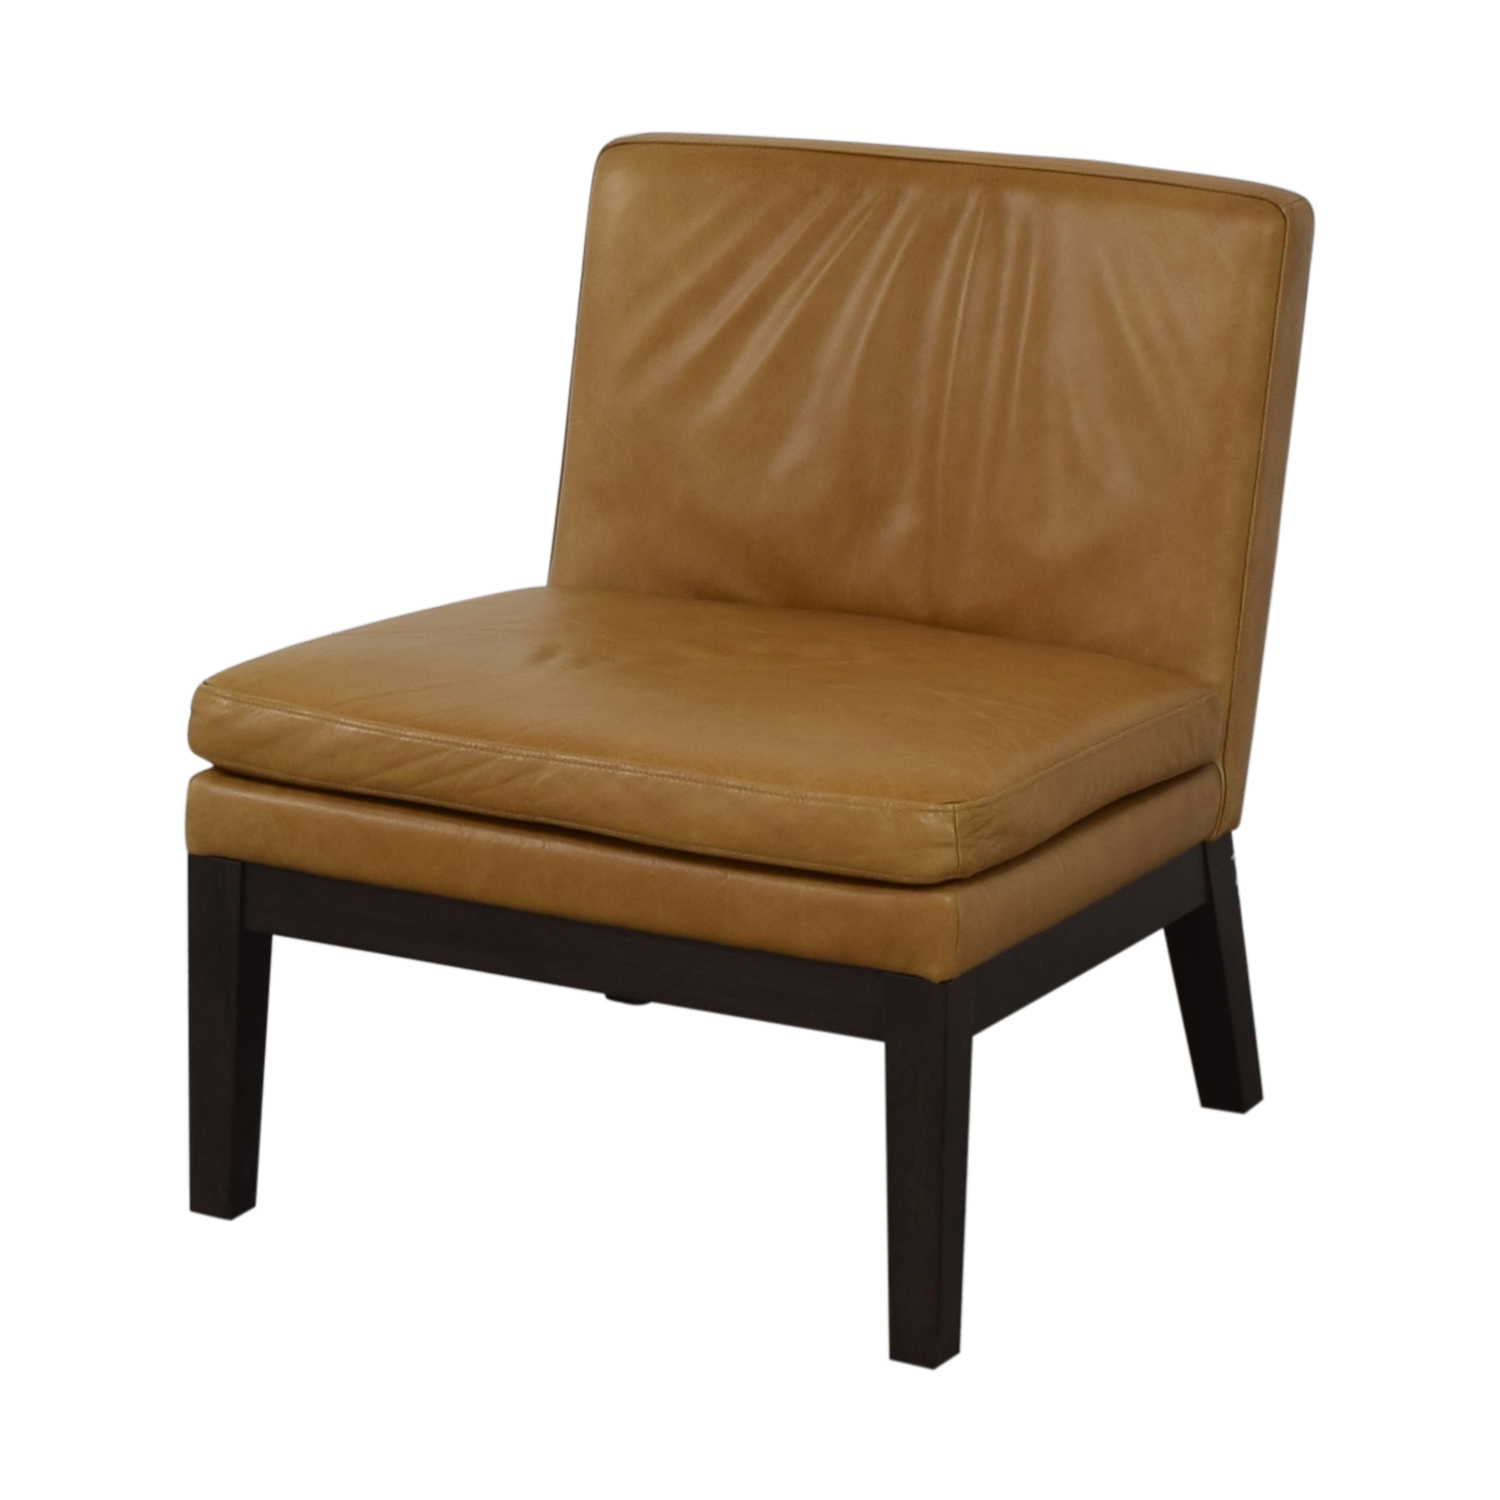 buy West Elm Orange Tan Leather Chair West Elm Accent Chairs